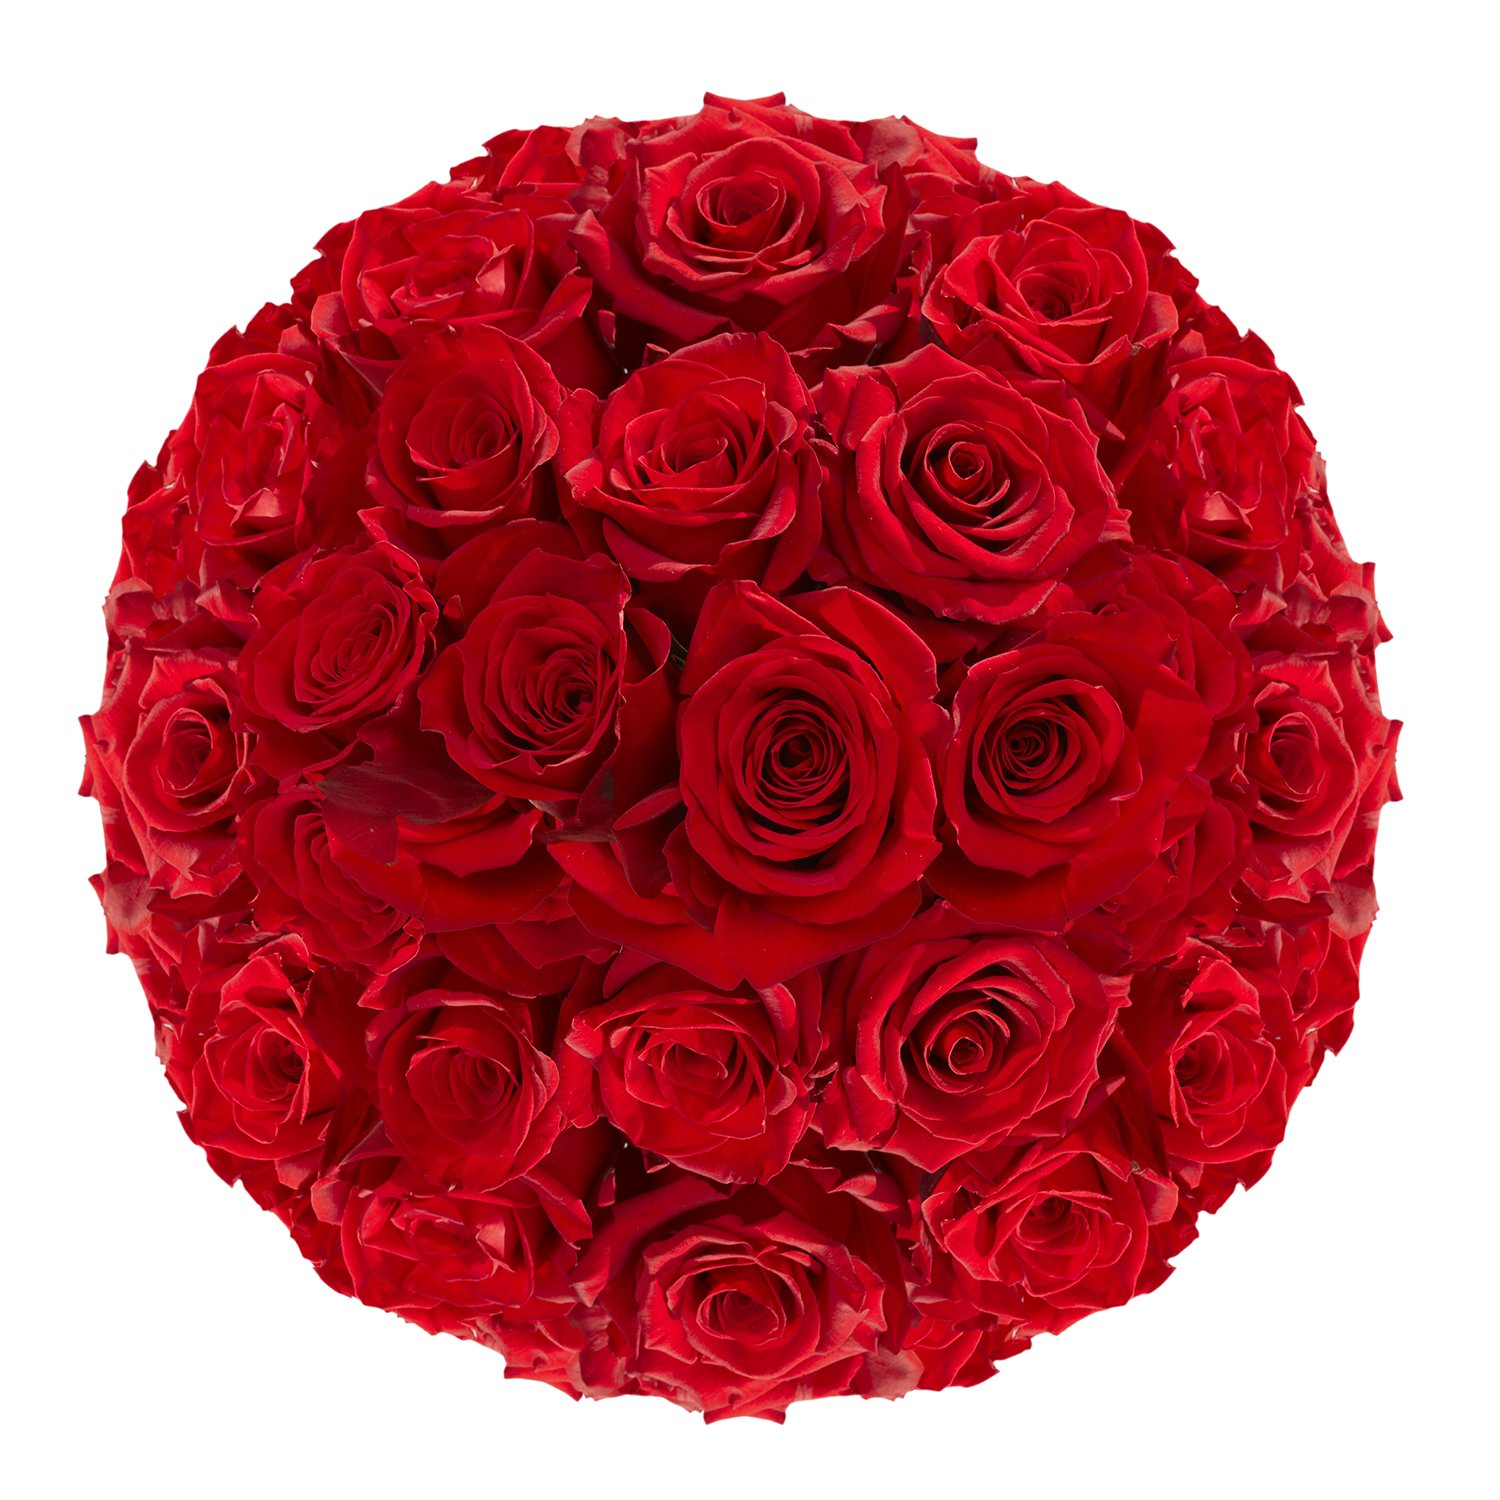 GlobalRose Red Roses- Fresh Flowers Express Delivery- 100 Stems by GlobalRose